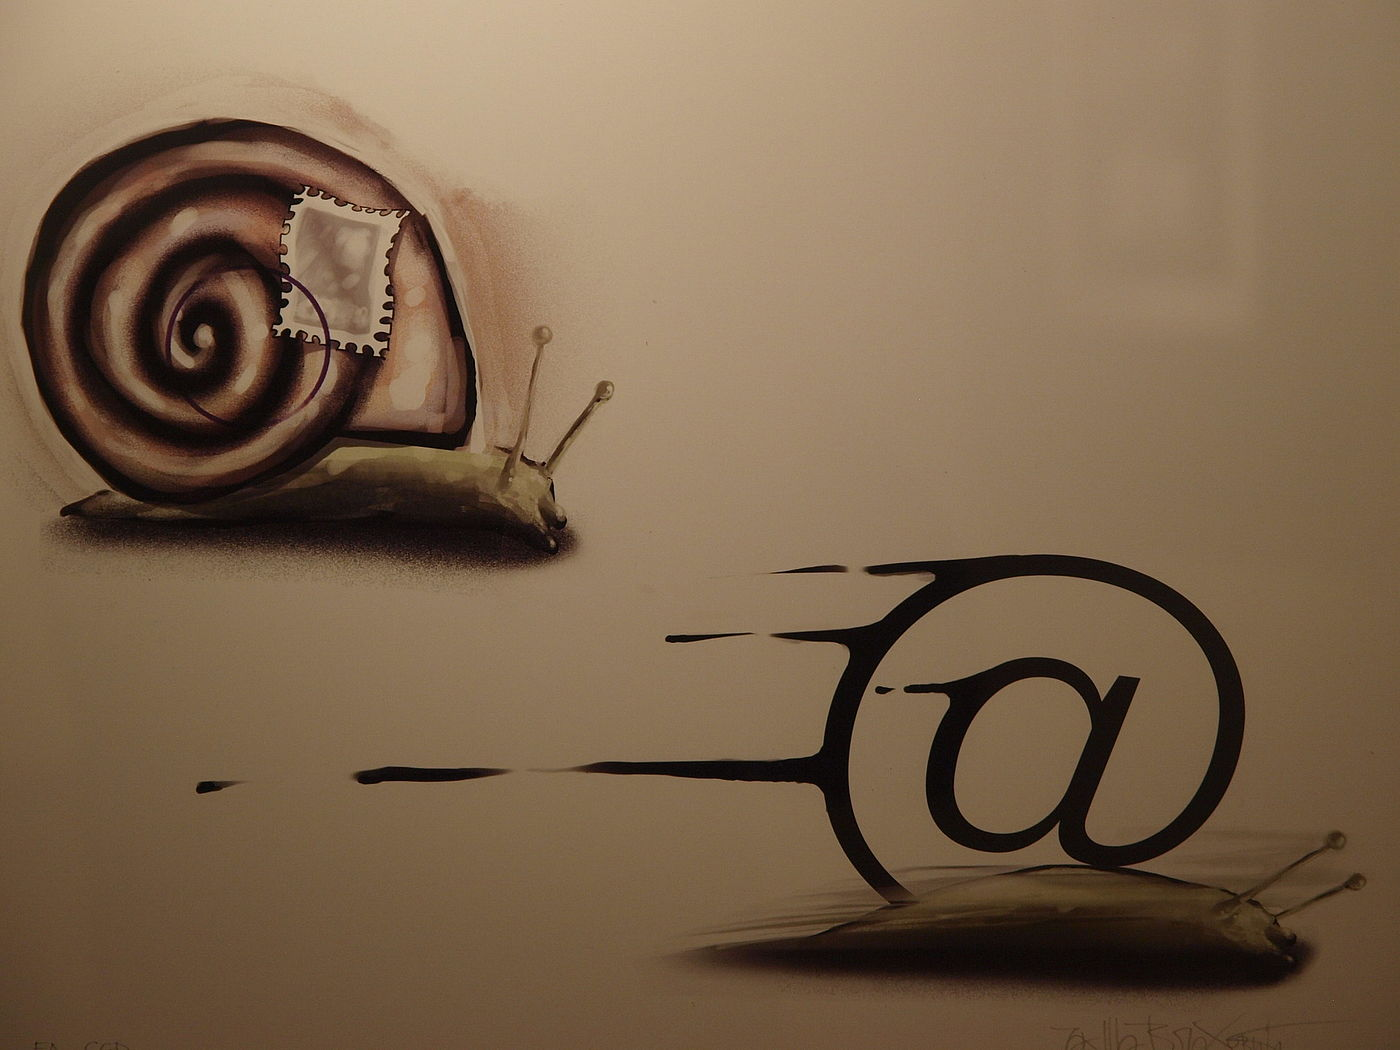 snail or mail